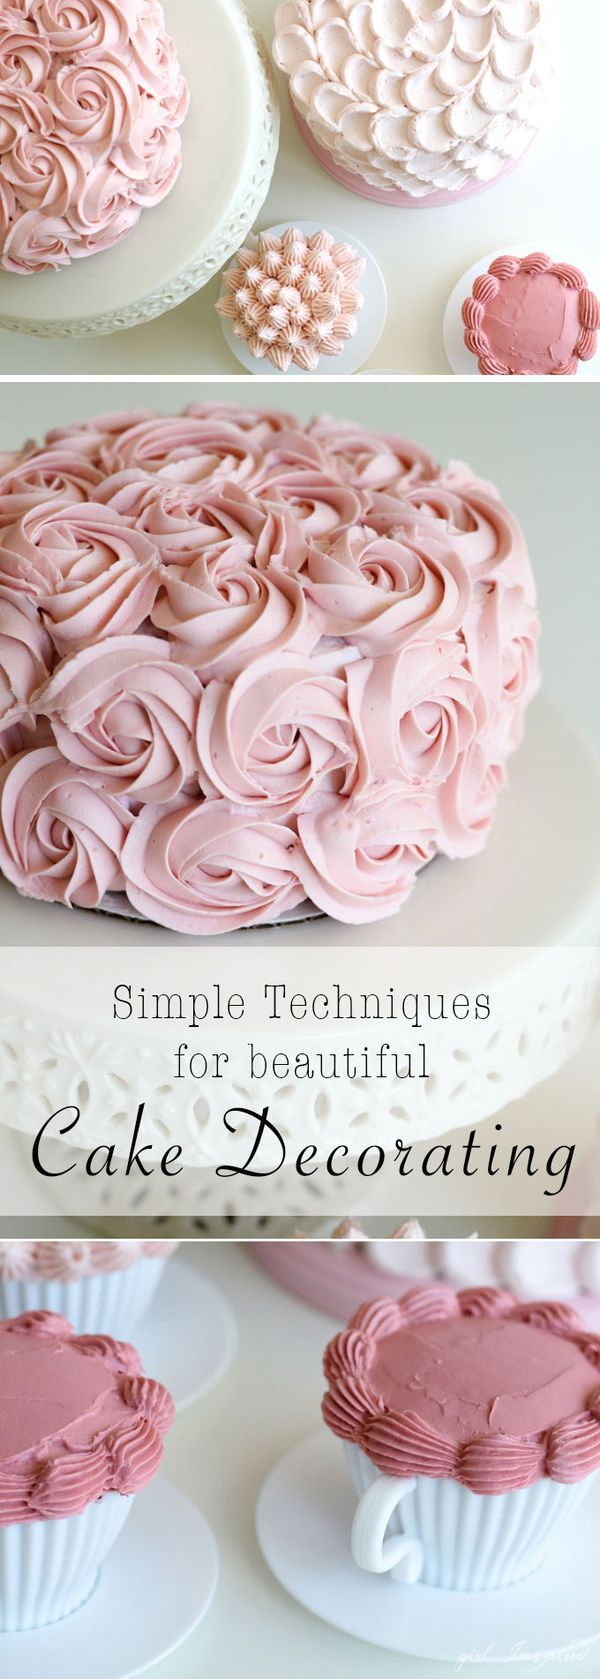 DIY Tutorial - Learn these simple techniques for cake decorating!